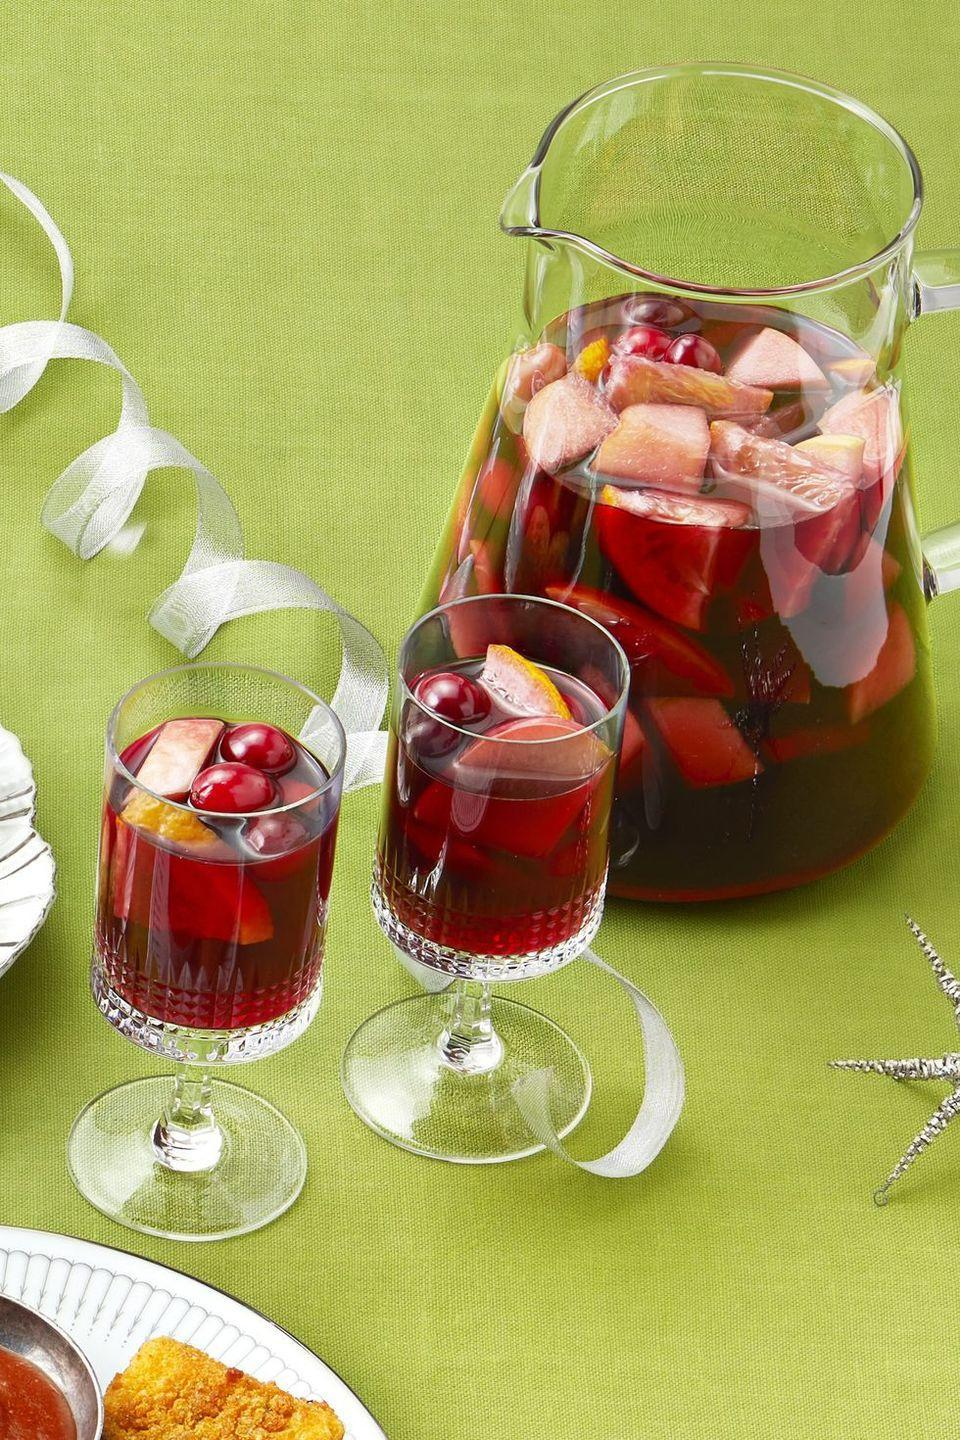 """<p>Pitcher drinks are great for any party—especially on Halloween. Make this cold-weather sangria in advance, then serve it up when the full moon rises. </p><p><a href=""""https://www.thepioneerwoman.com/food-cooking/recipes/a32303964/winter-sangria-recipe/"""" rel=""""nofollow noopener"""" target=""""_blank"""" data-ylk=""""slk:Get Ree's recipe."""" class=""""link rapid-noclick-resp""""><strong>Get Ree's recipe. </strong></a></p><p><a class=""""link rapid-noclick-resp"""" href=""""https://go.redirectingat.com?id=74968X1596630&url=https%3A%2F%2Fwww.walmart.com%2Fsearch%2F%3Fquery%3Dpioneer%2Bwoman%2Bpitchers&sref=https%3A%2F%2Fwww.thepioneerwoman.com%2Fholidays-celebrations%2Fg36982659%2Fhalloween-drink-recipes%2F"""" rel=""""nofollow noopener"""" target=""""_blank"""" data-ylk=""""slk:SHOP PITCHERS"""">SHOP PITCHERS</a></p>"""